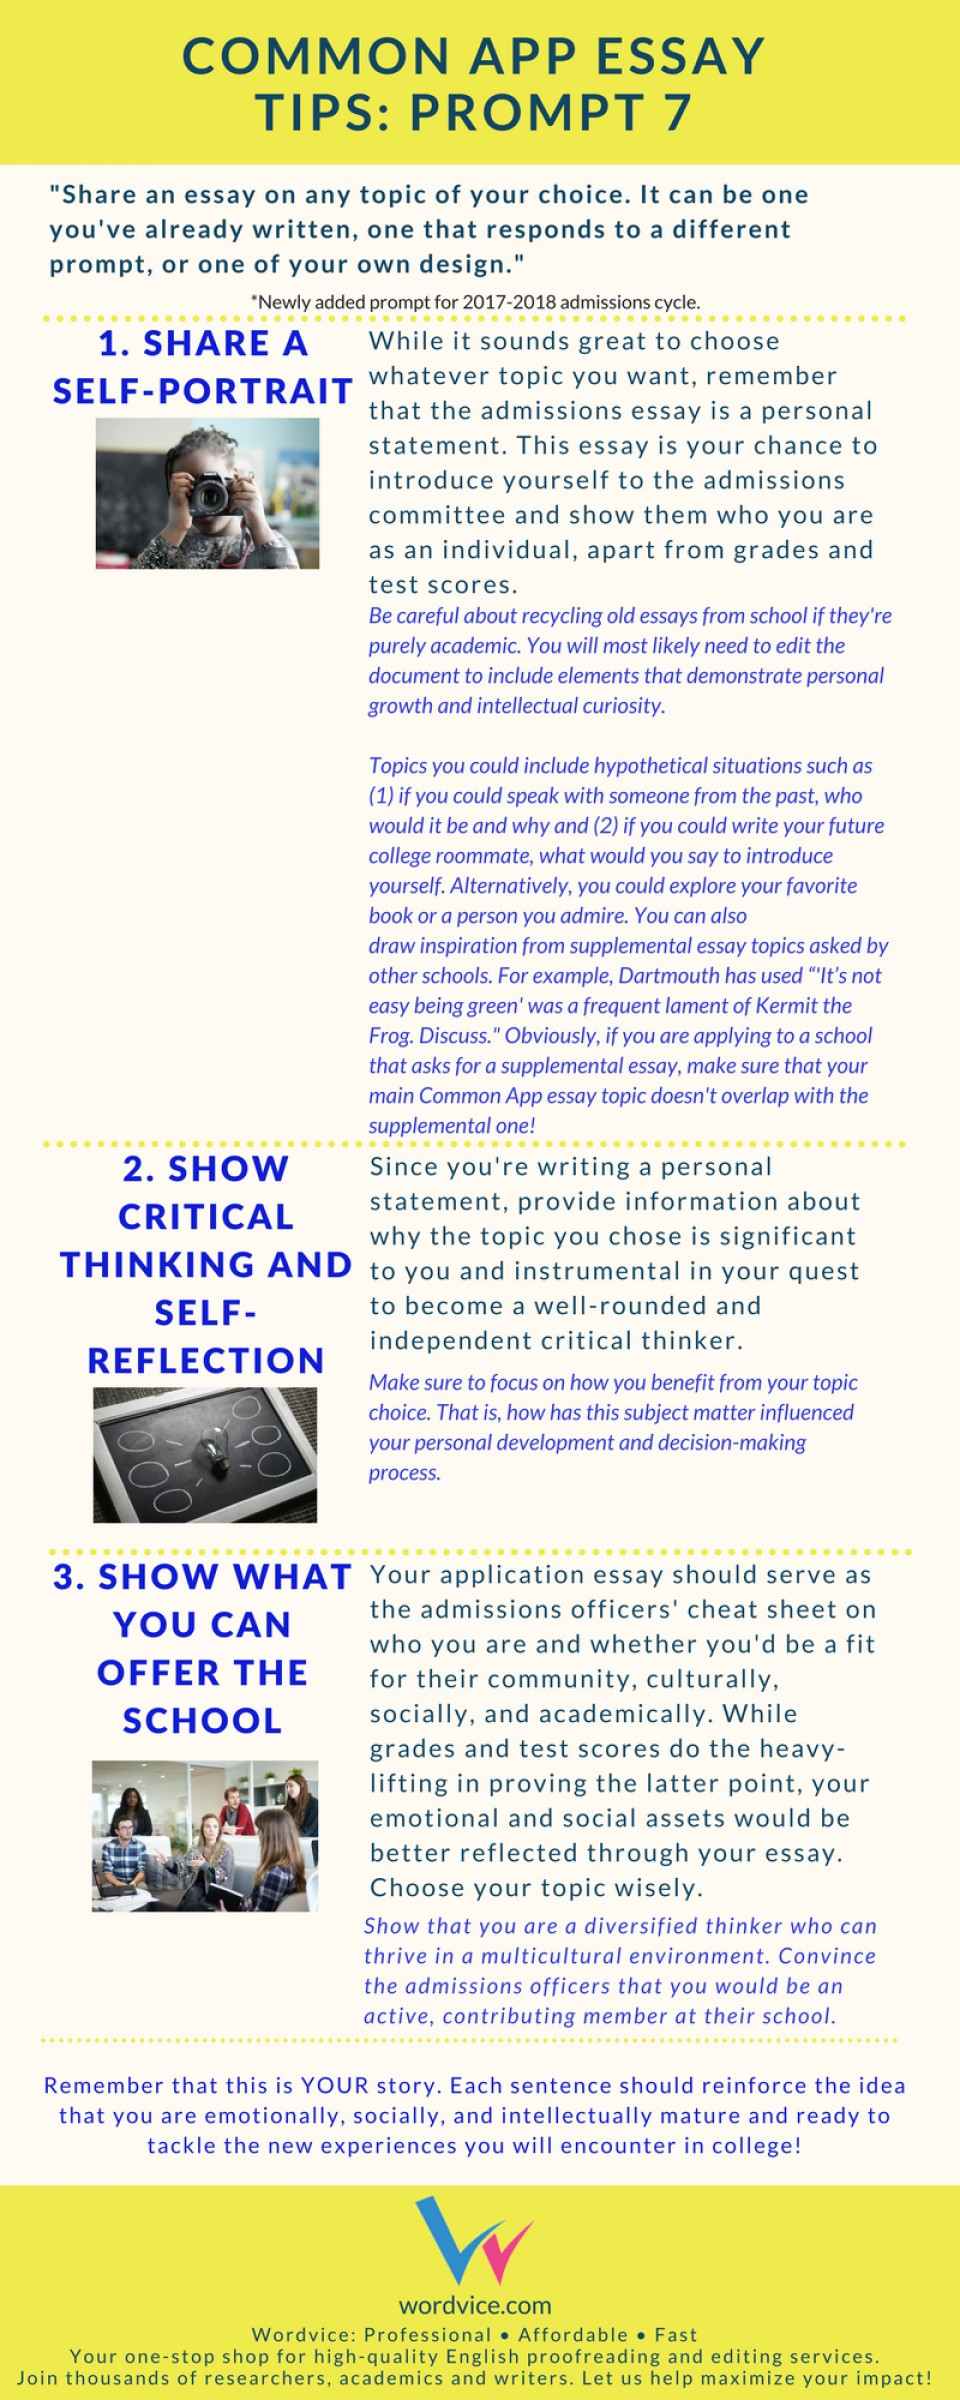 010 Common Application Essay Prompts Example App Brainstormprompt Best 2017 2017-18 A Guide Examples 960